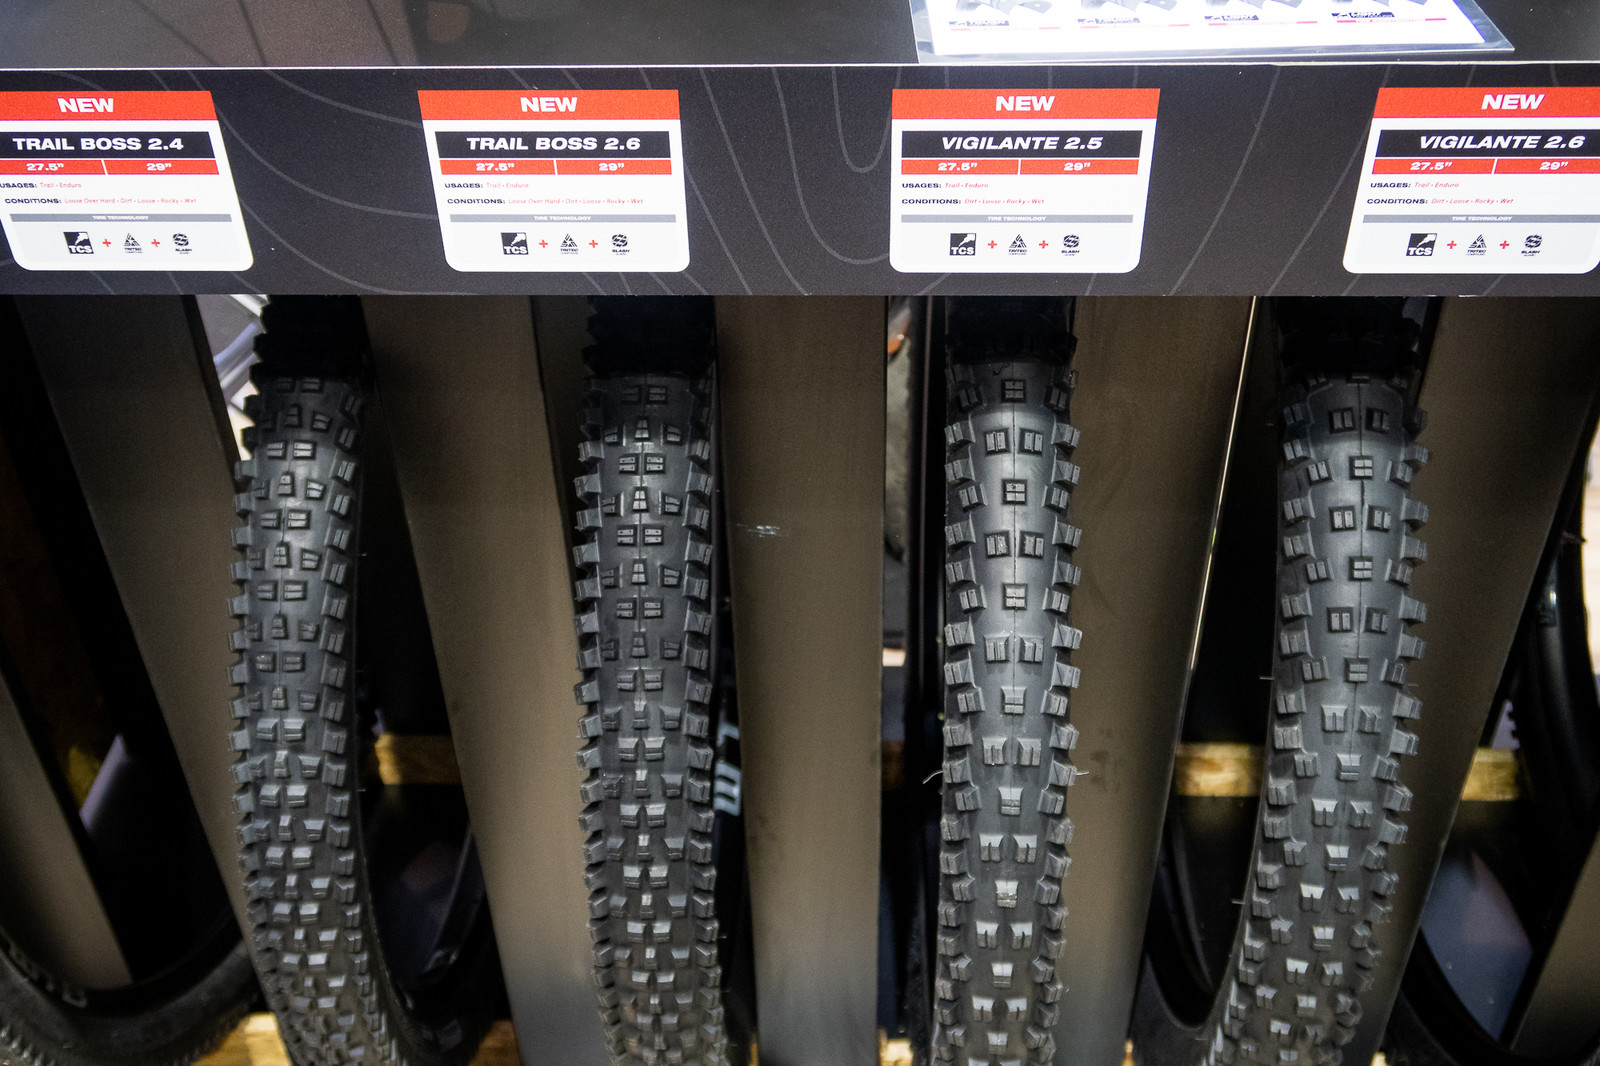 2019 Mountain Bike Tire Offerings from WTB